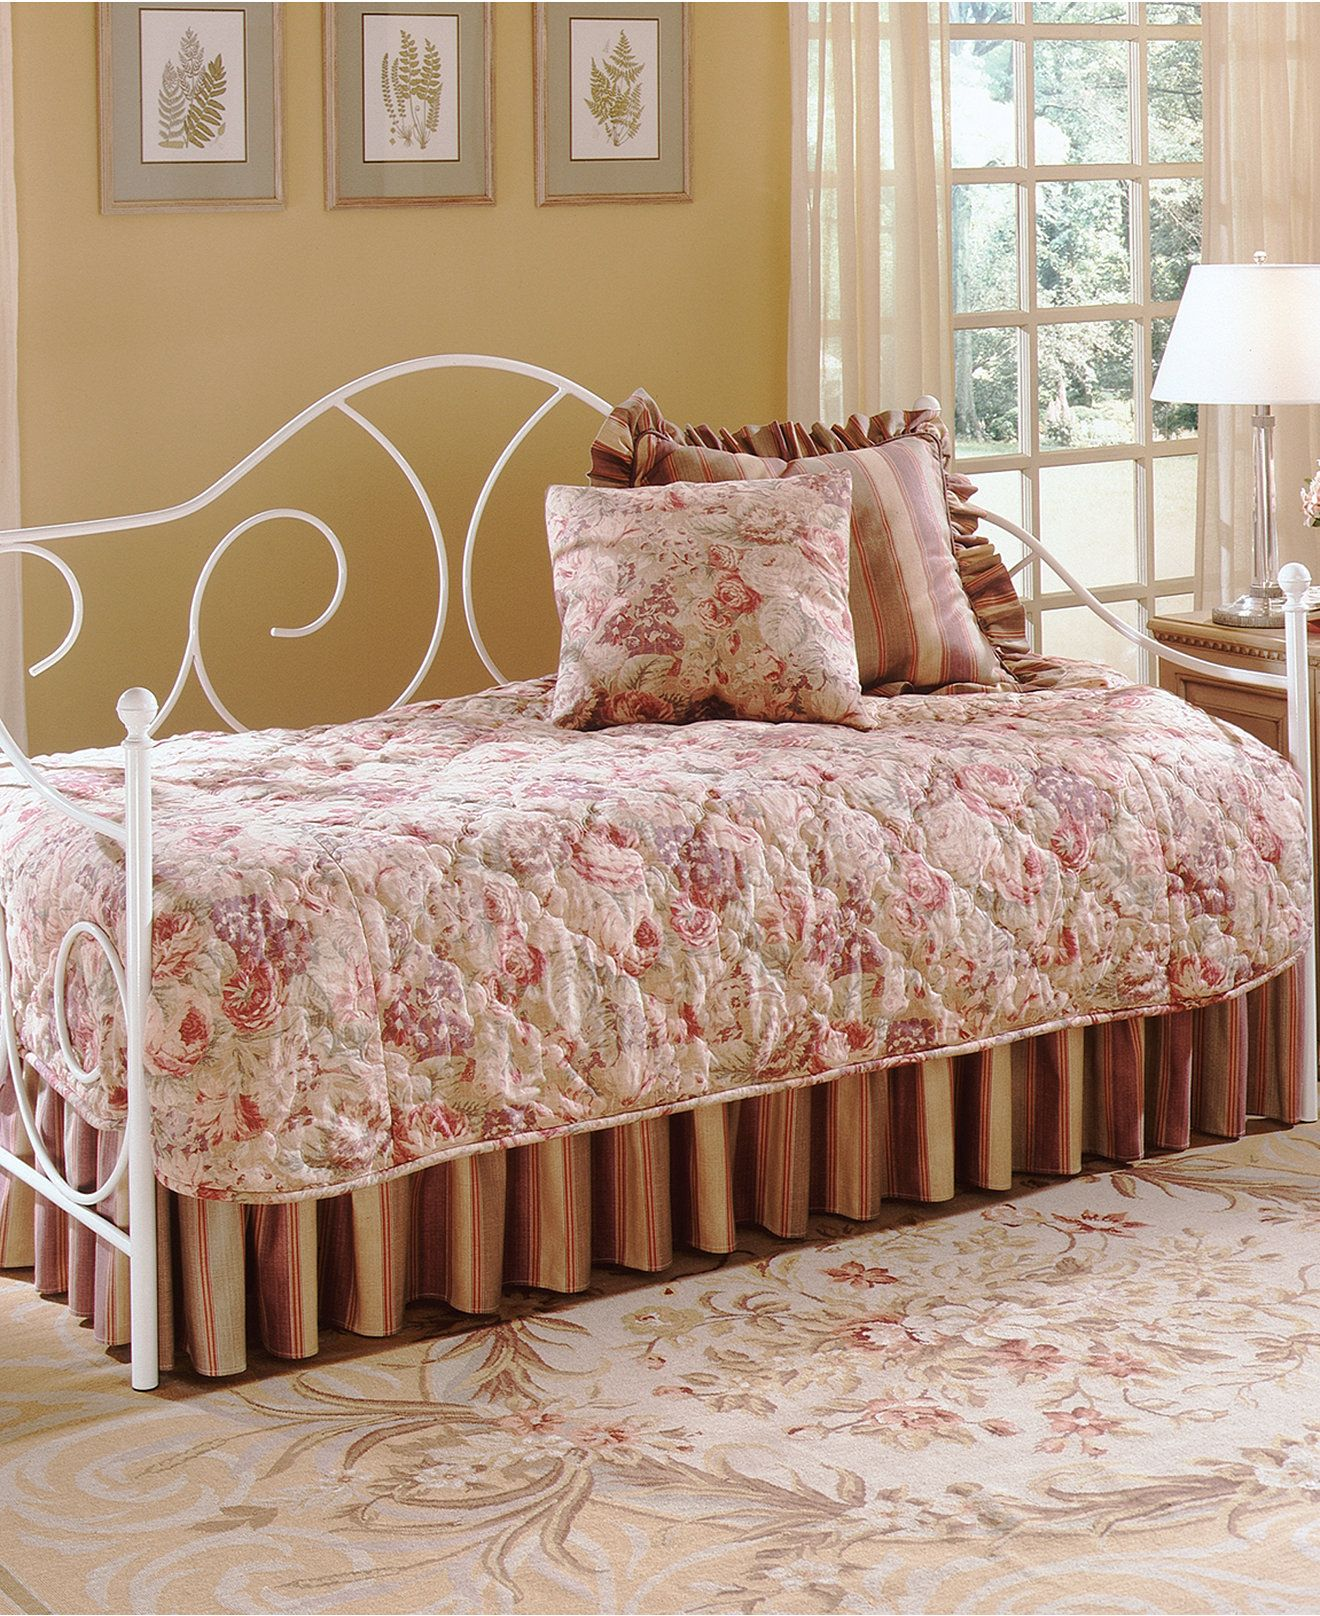 Kasia White Daybed mattresses Macy's Metal daybed